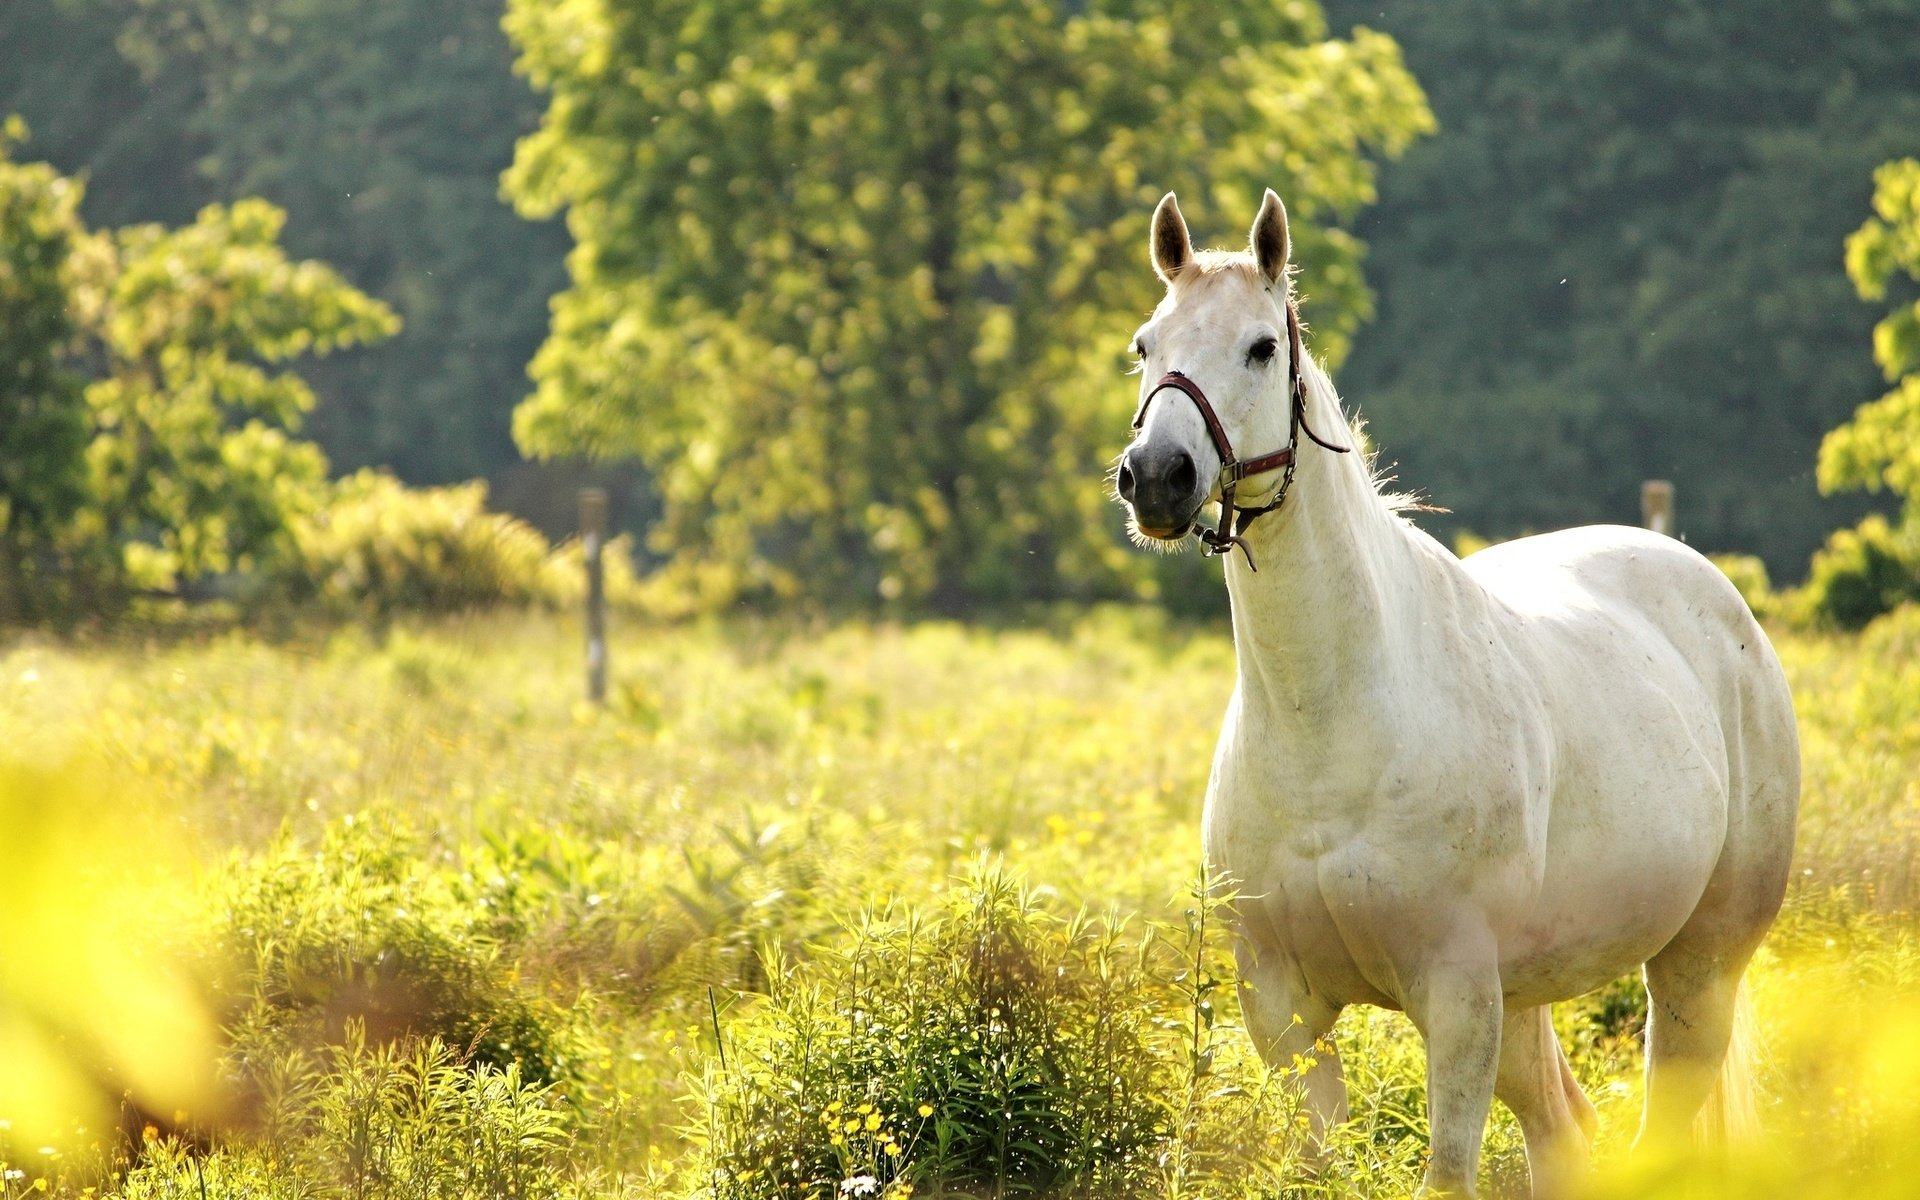 Good Wallpaper High Resolution Horse - thumb-1920-415221  Pictures_189186.jpg